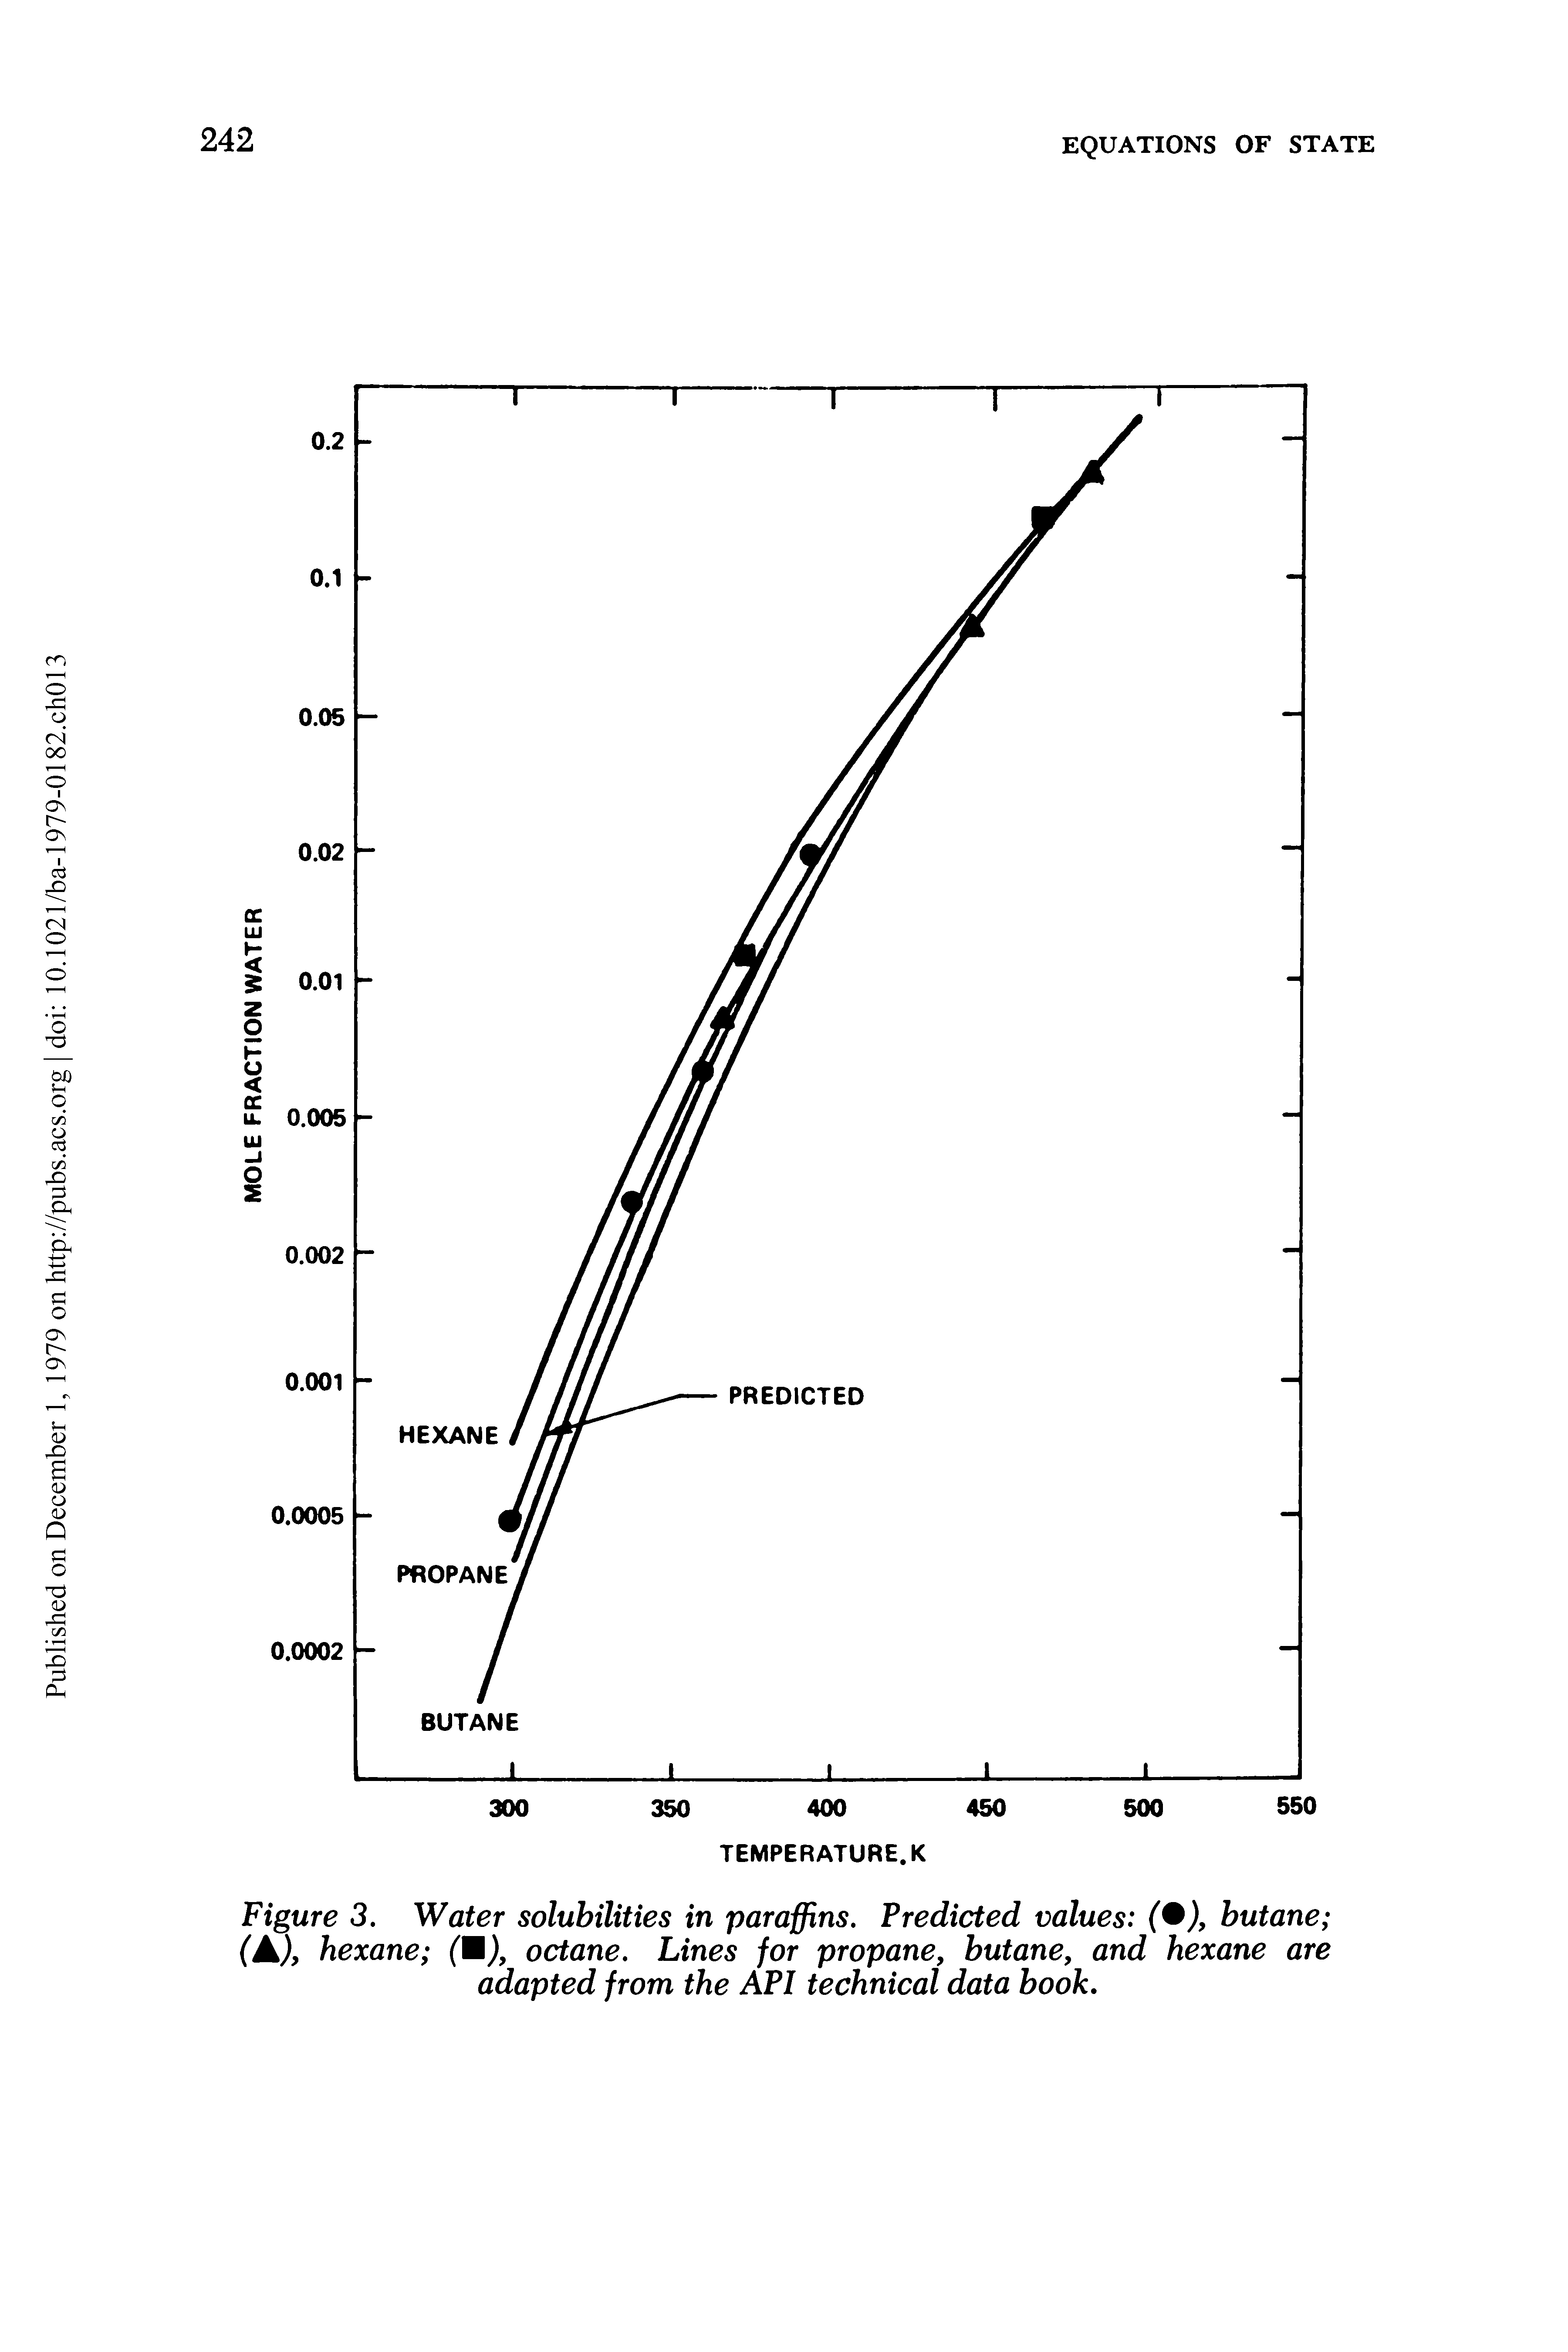 "Figure 3. <a href=""/info/solubility_in_water"">Water solubilities</a> in paraffins. <a href=""/info/predictive_value"">Predicted values</a> ( ), butane (A), hexane (M), octane. Lines for propane, butane, and hexane are adapted from the API <a href=""/info/technical_data"">technical data</a> book."